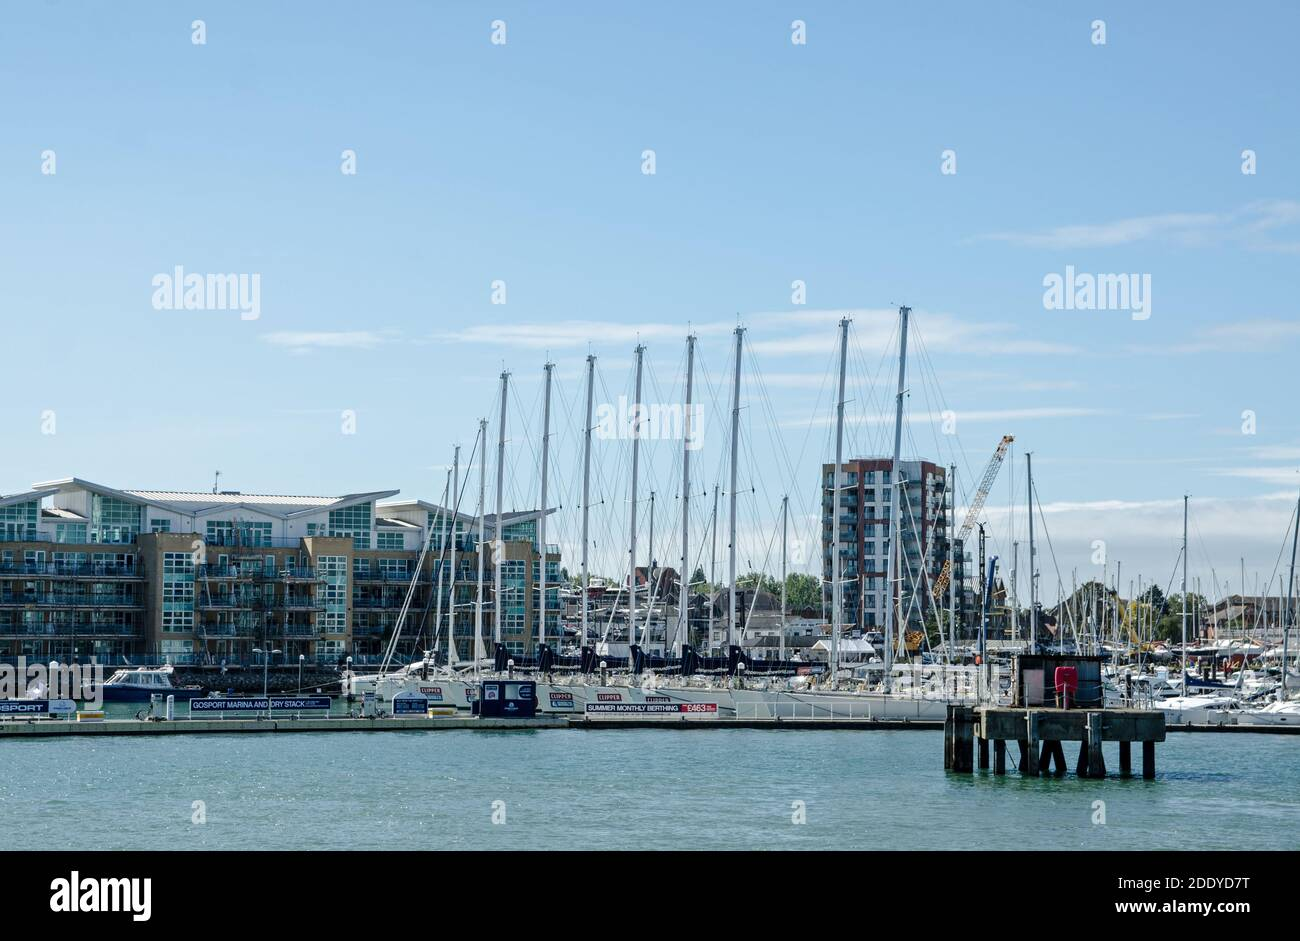 Gosport, UK - September 8, 2020: View of Gosport Marina with a number of yachts involved in the Clipper Round the World race moored in the sunshine. Stock Photo